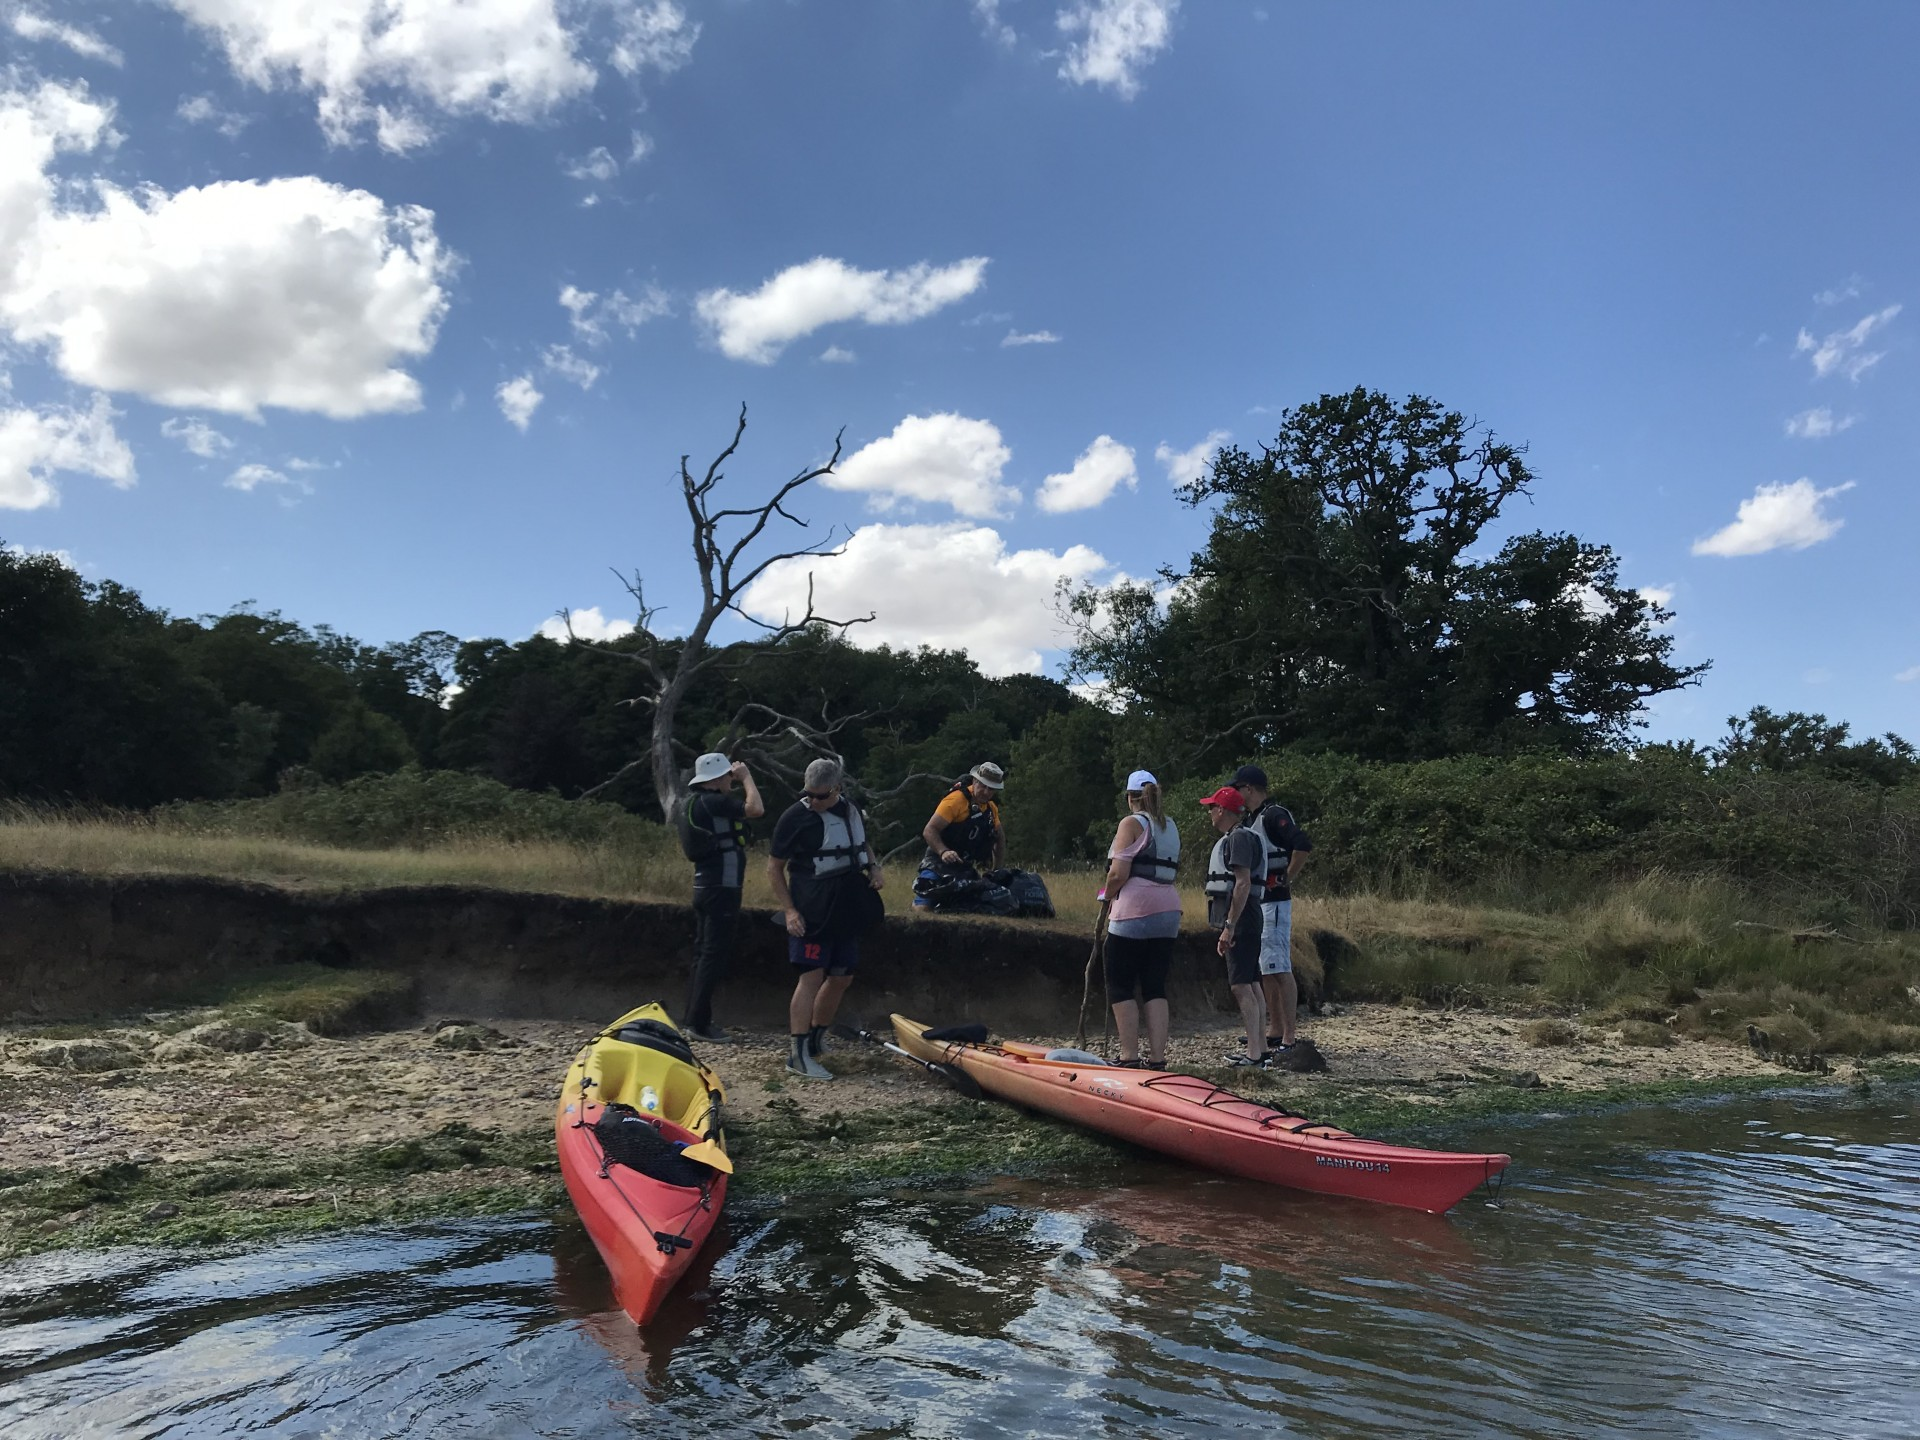 Two kayaks beached wih a small group collecting refuse